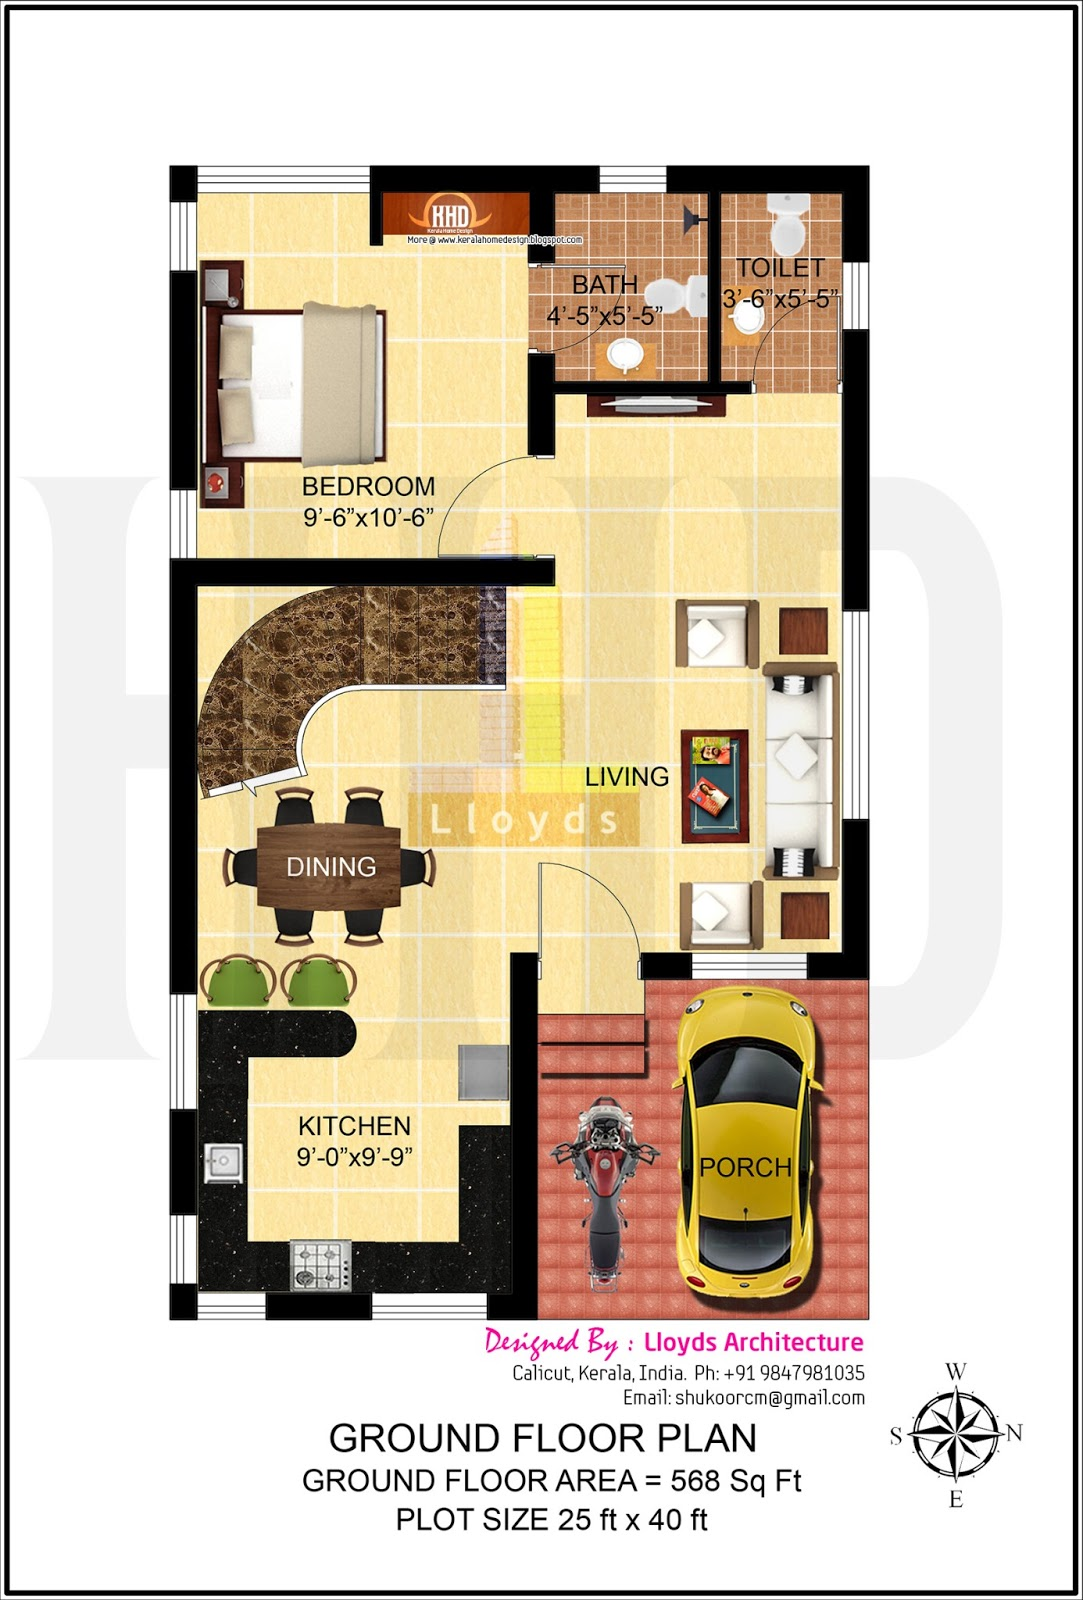 4 bedroom house plan in less than 3 cents kerala home for Single floor house designs tamilnadu